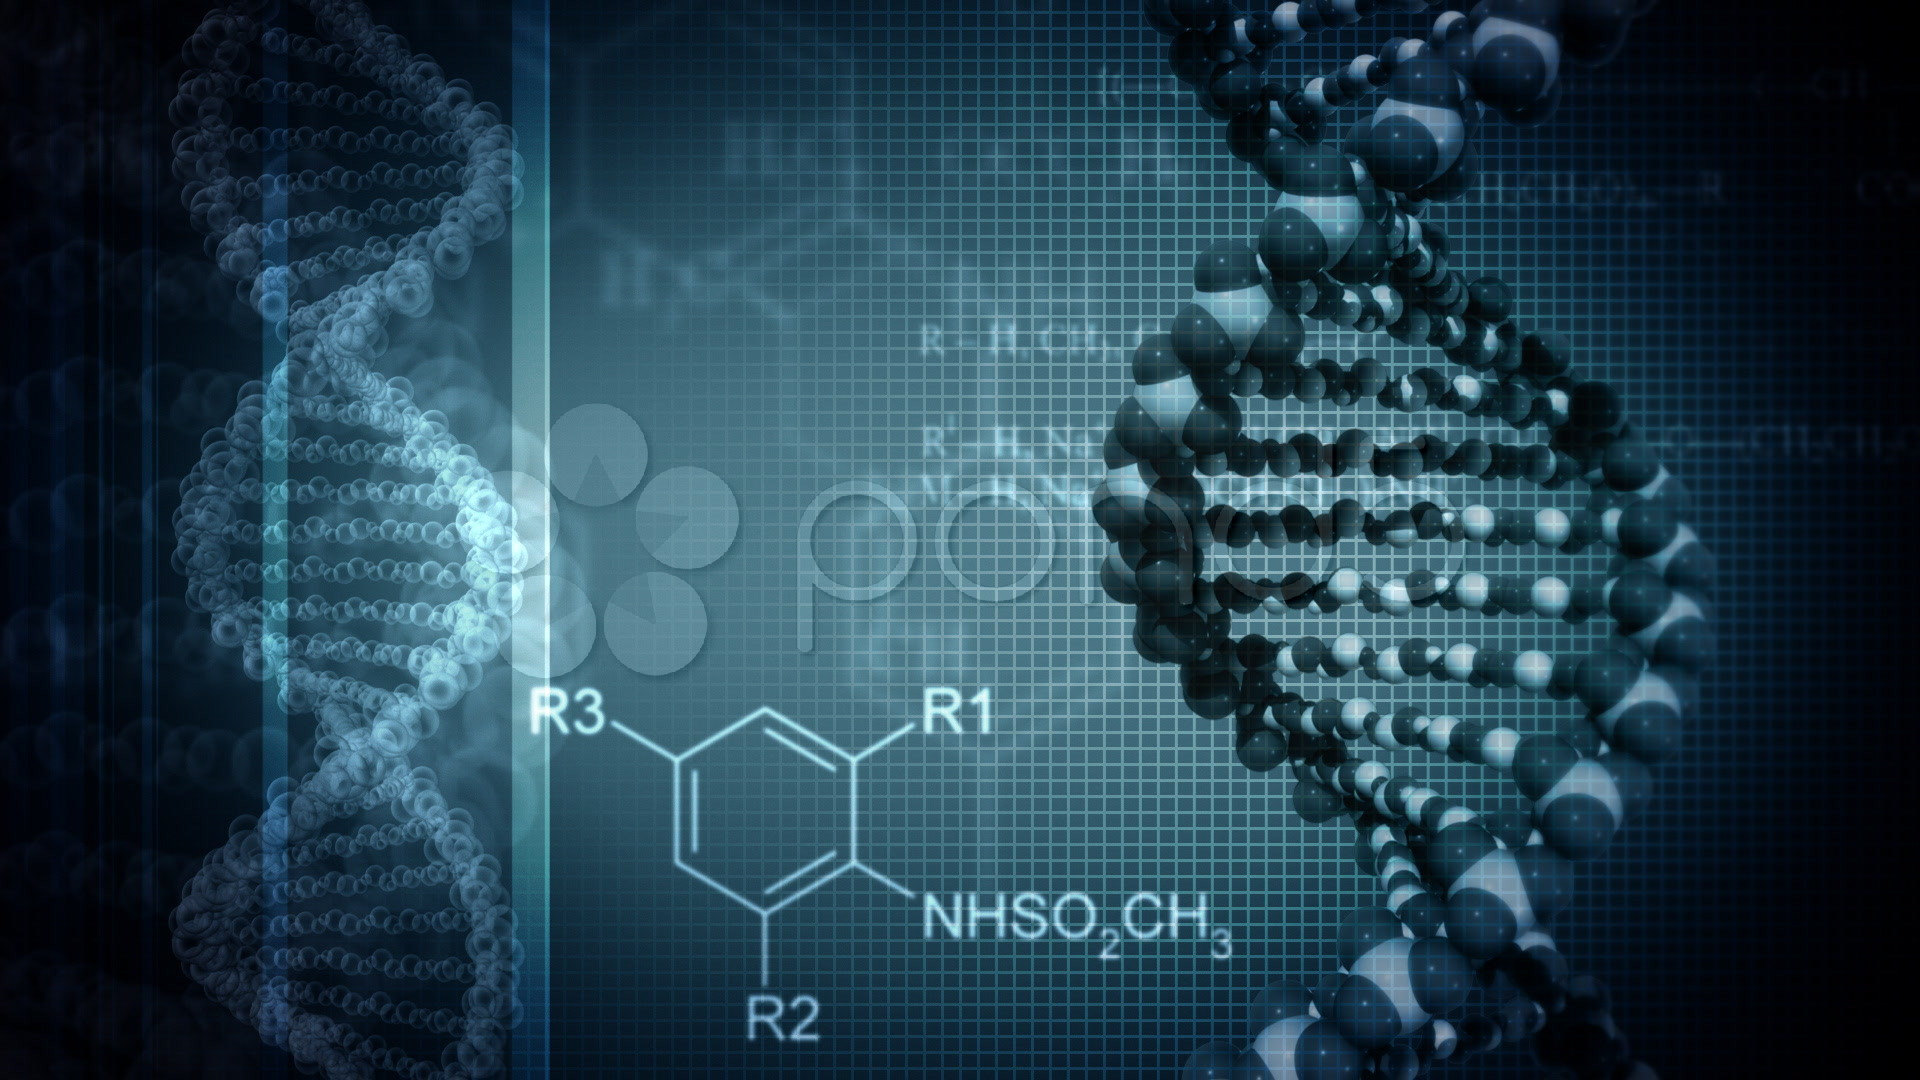 Dna Wallpaper High Resolution: Scientific Dna Wallpapers 2018 (66+ Images